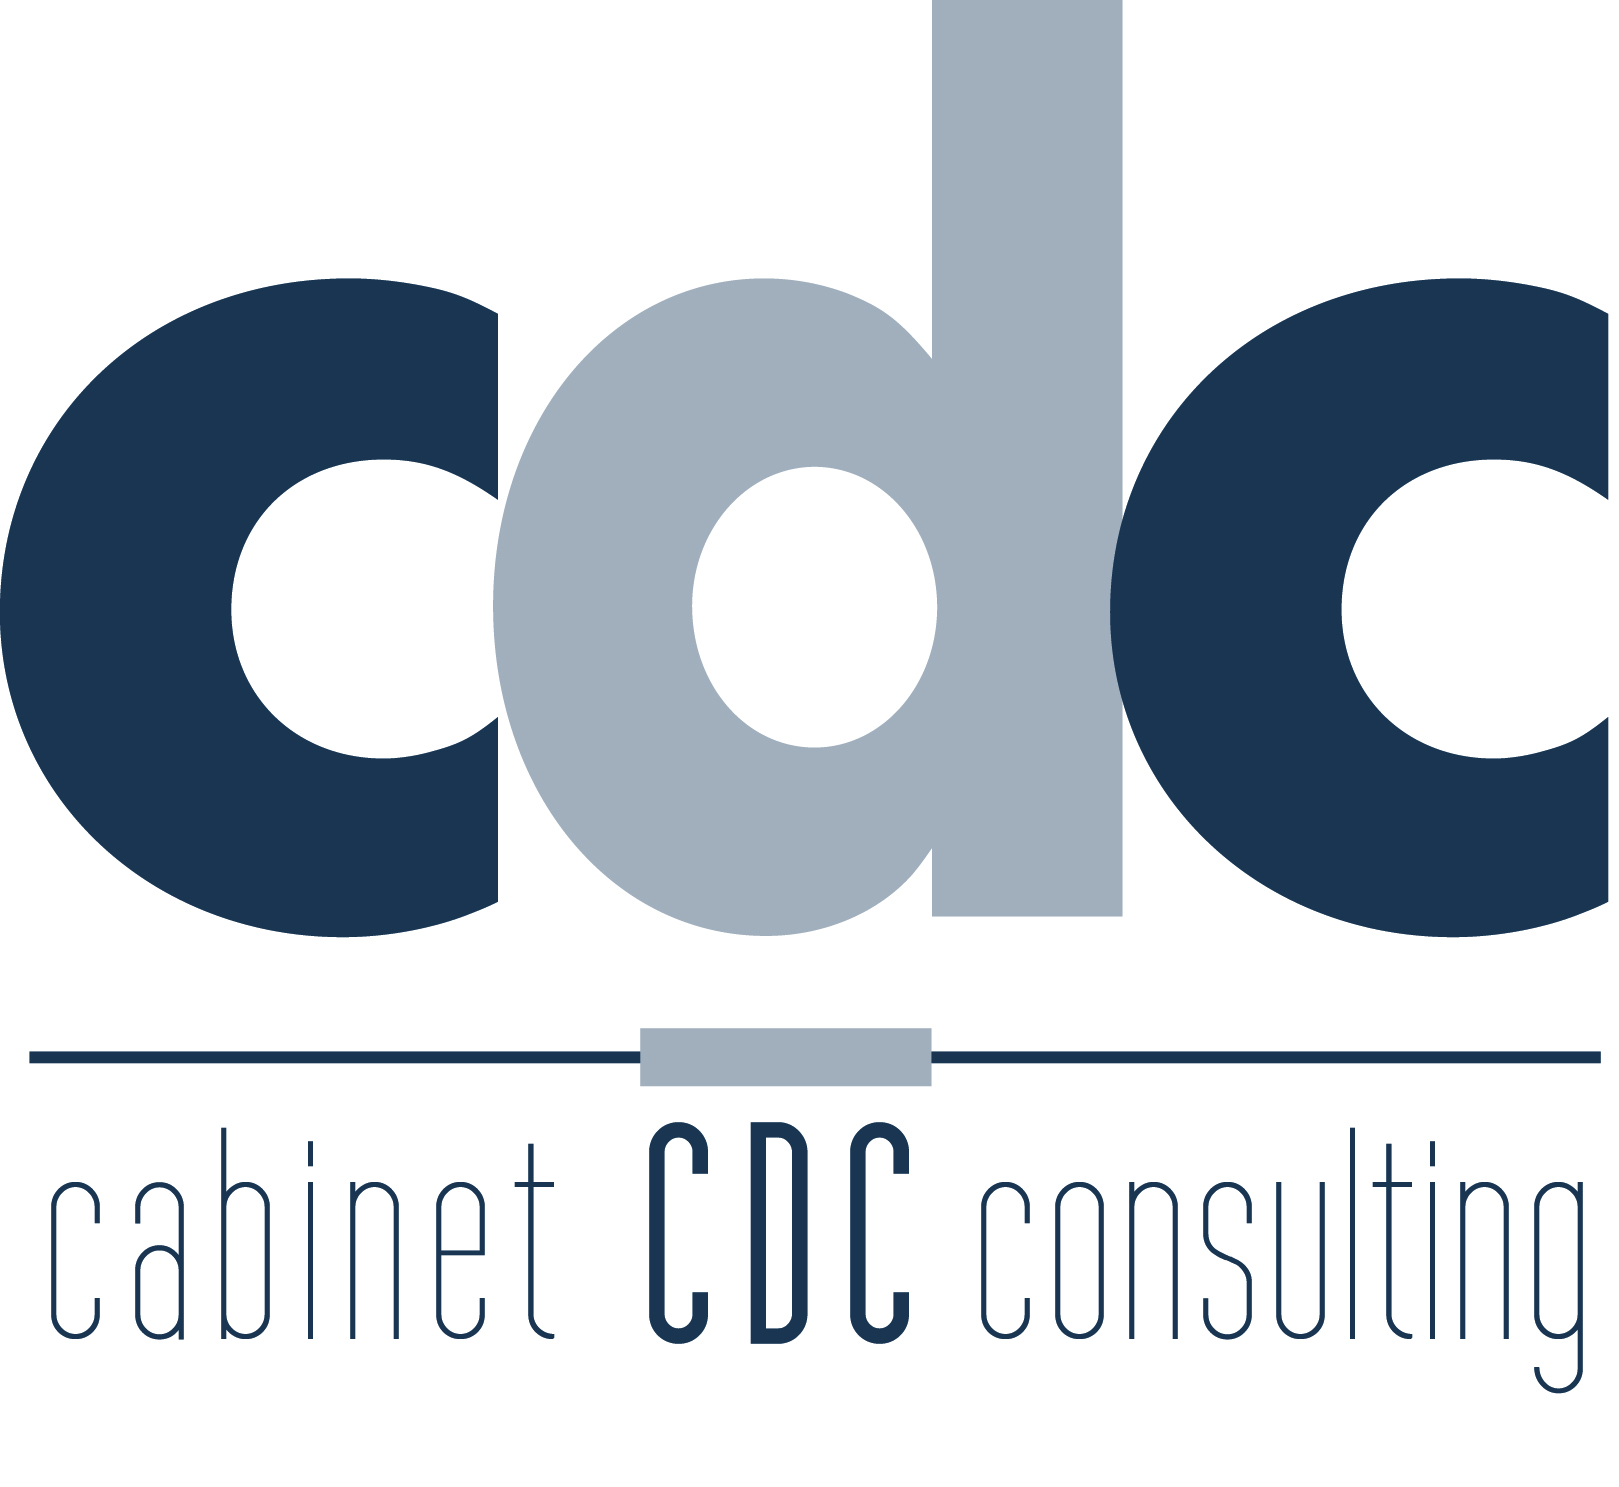 Cabinet Divorce Consulting